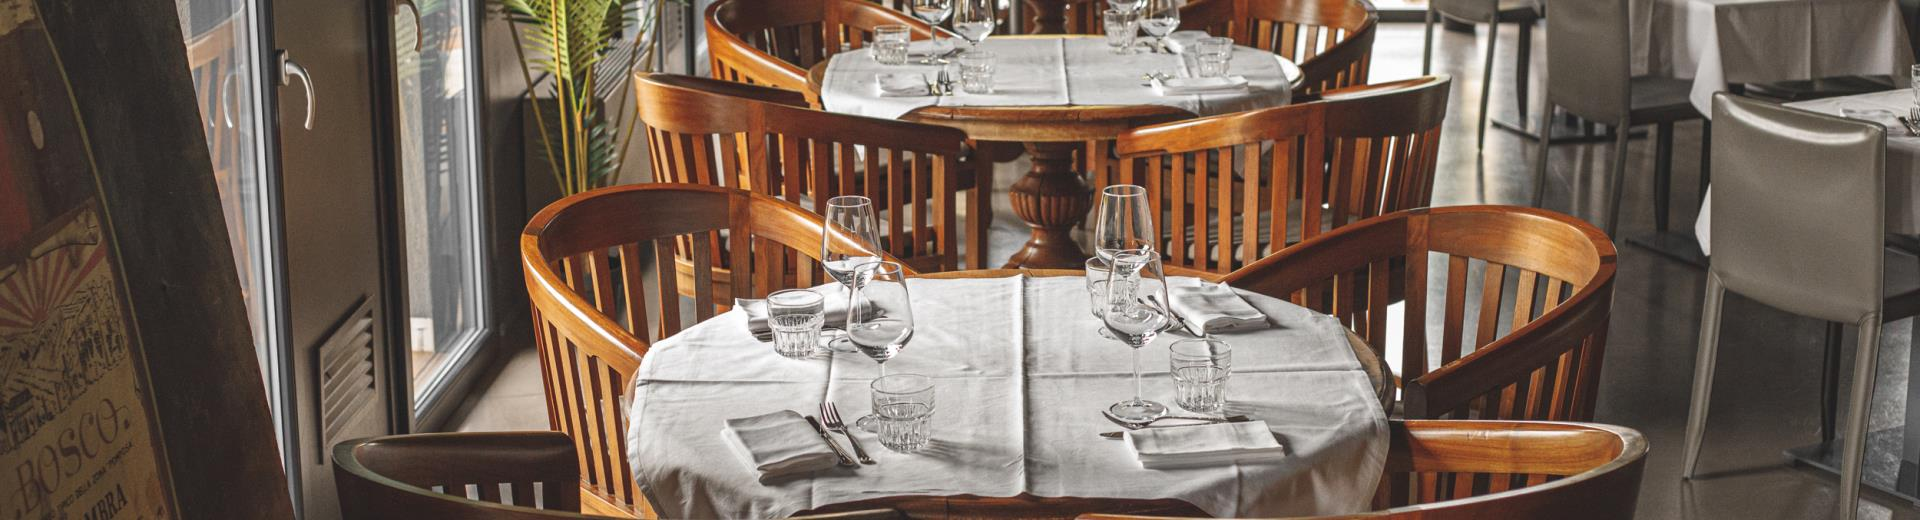 Discover the fine dining restaurant at Best Western Hotel Aries in Vicenza